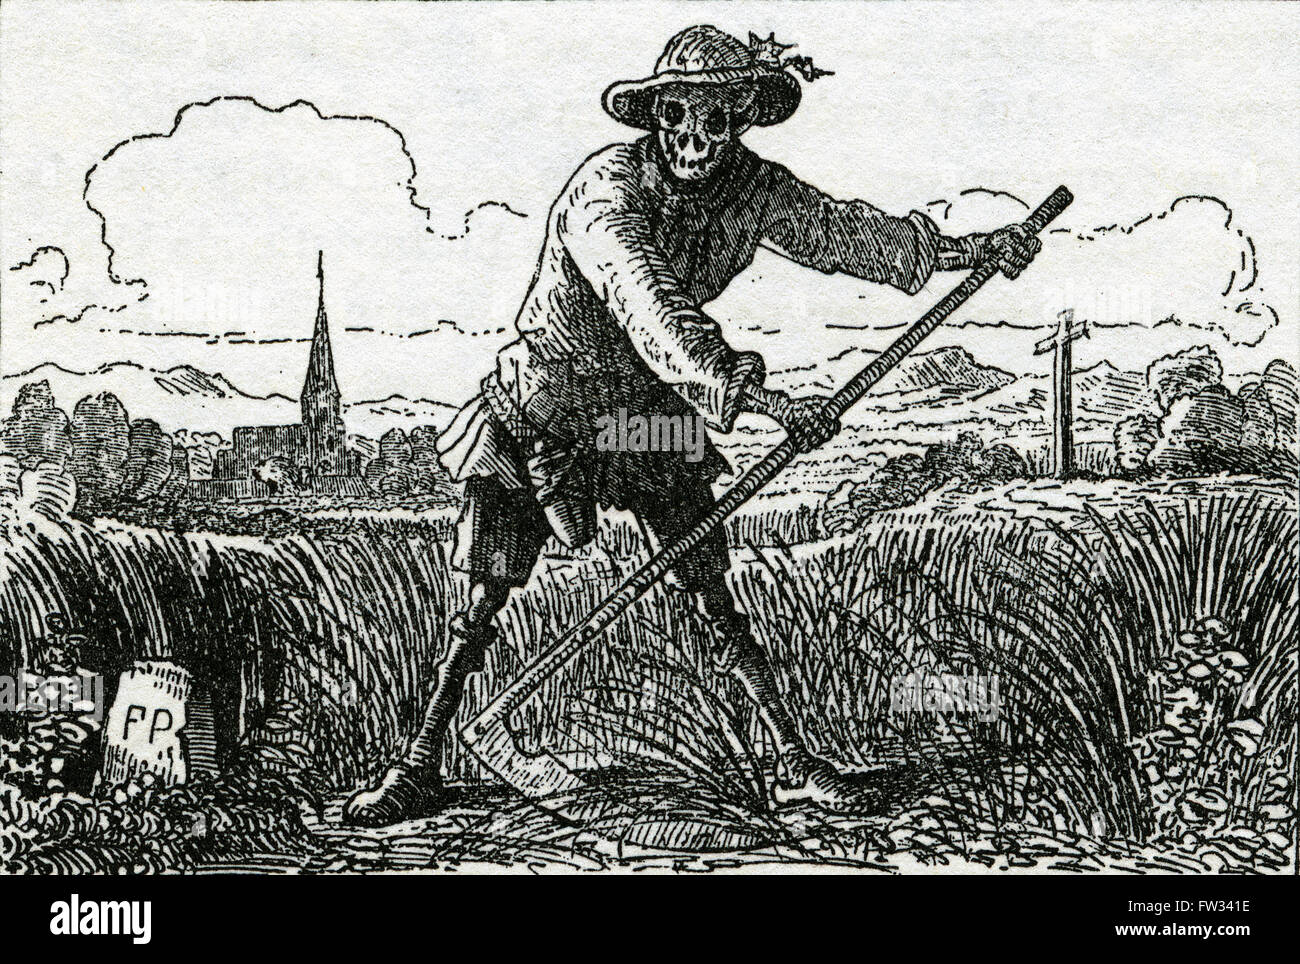 The Grim Reaper, drawing by Count Franz Pocci, 1807-1876 - Stock Image